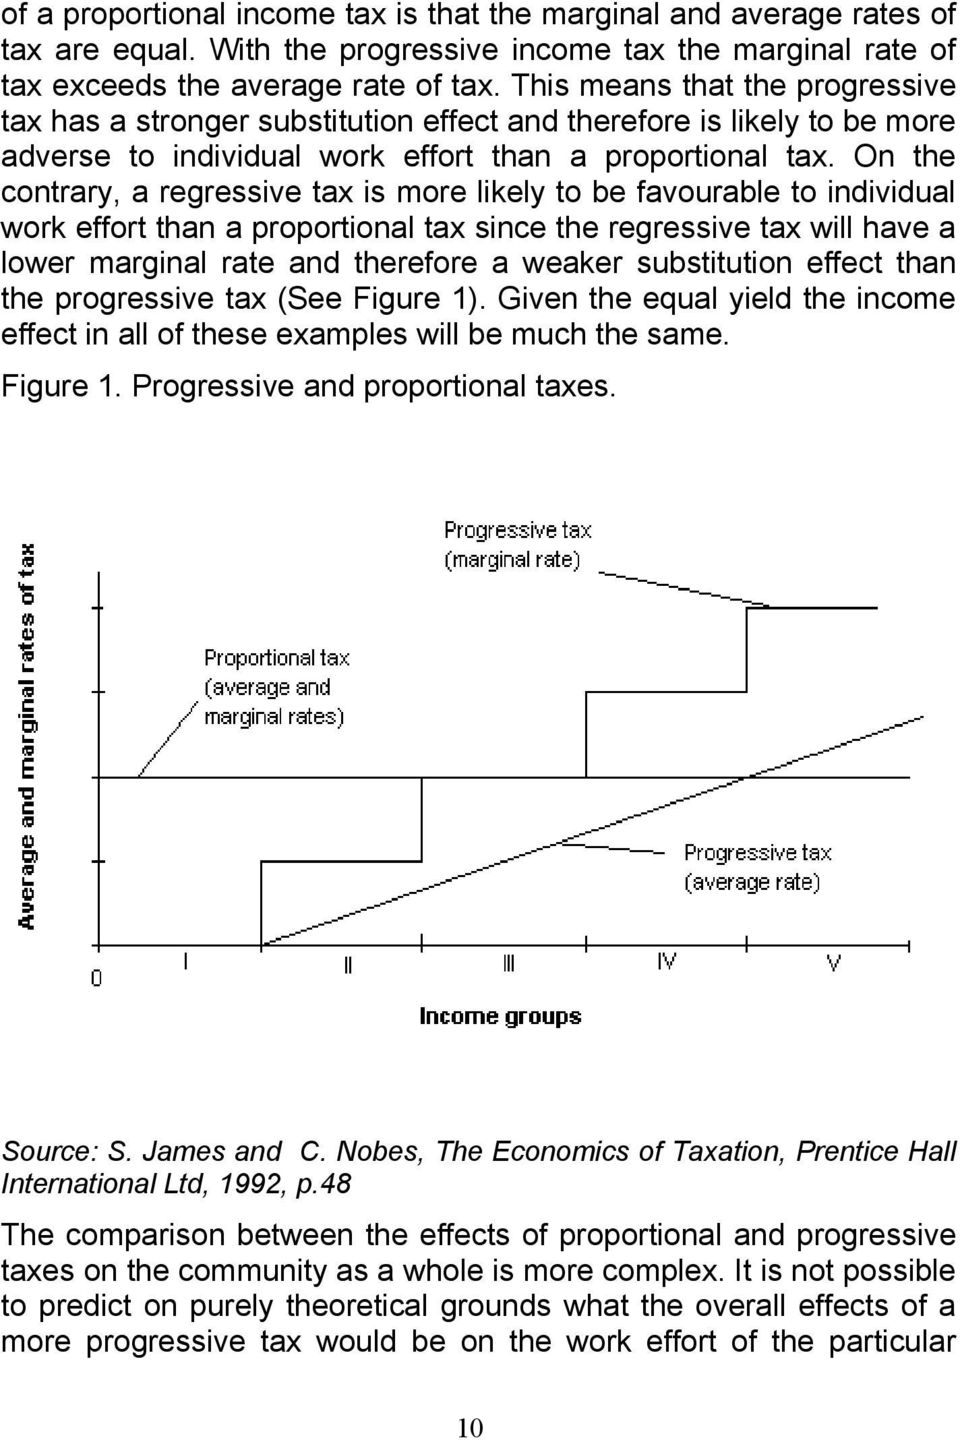 On the contrary, a regressive tax is more likely to be favourable to individual work effort than a proportional tax since the regressive tax will have a lower marginal rate and therefore a weaker